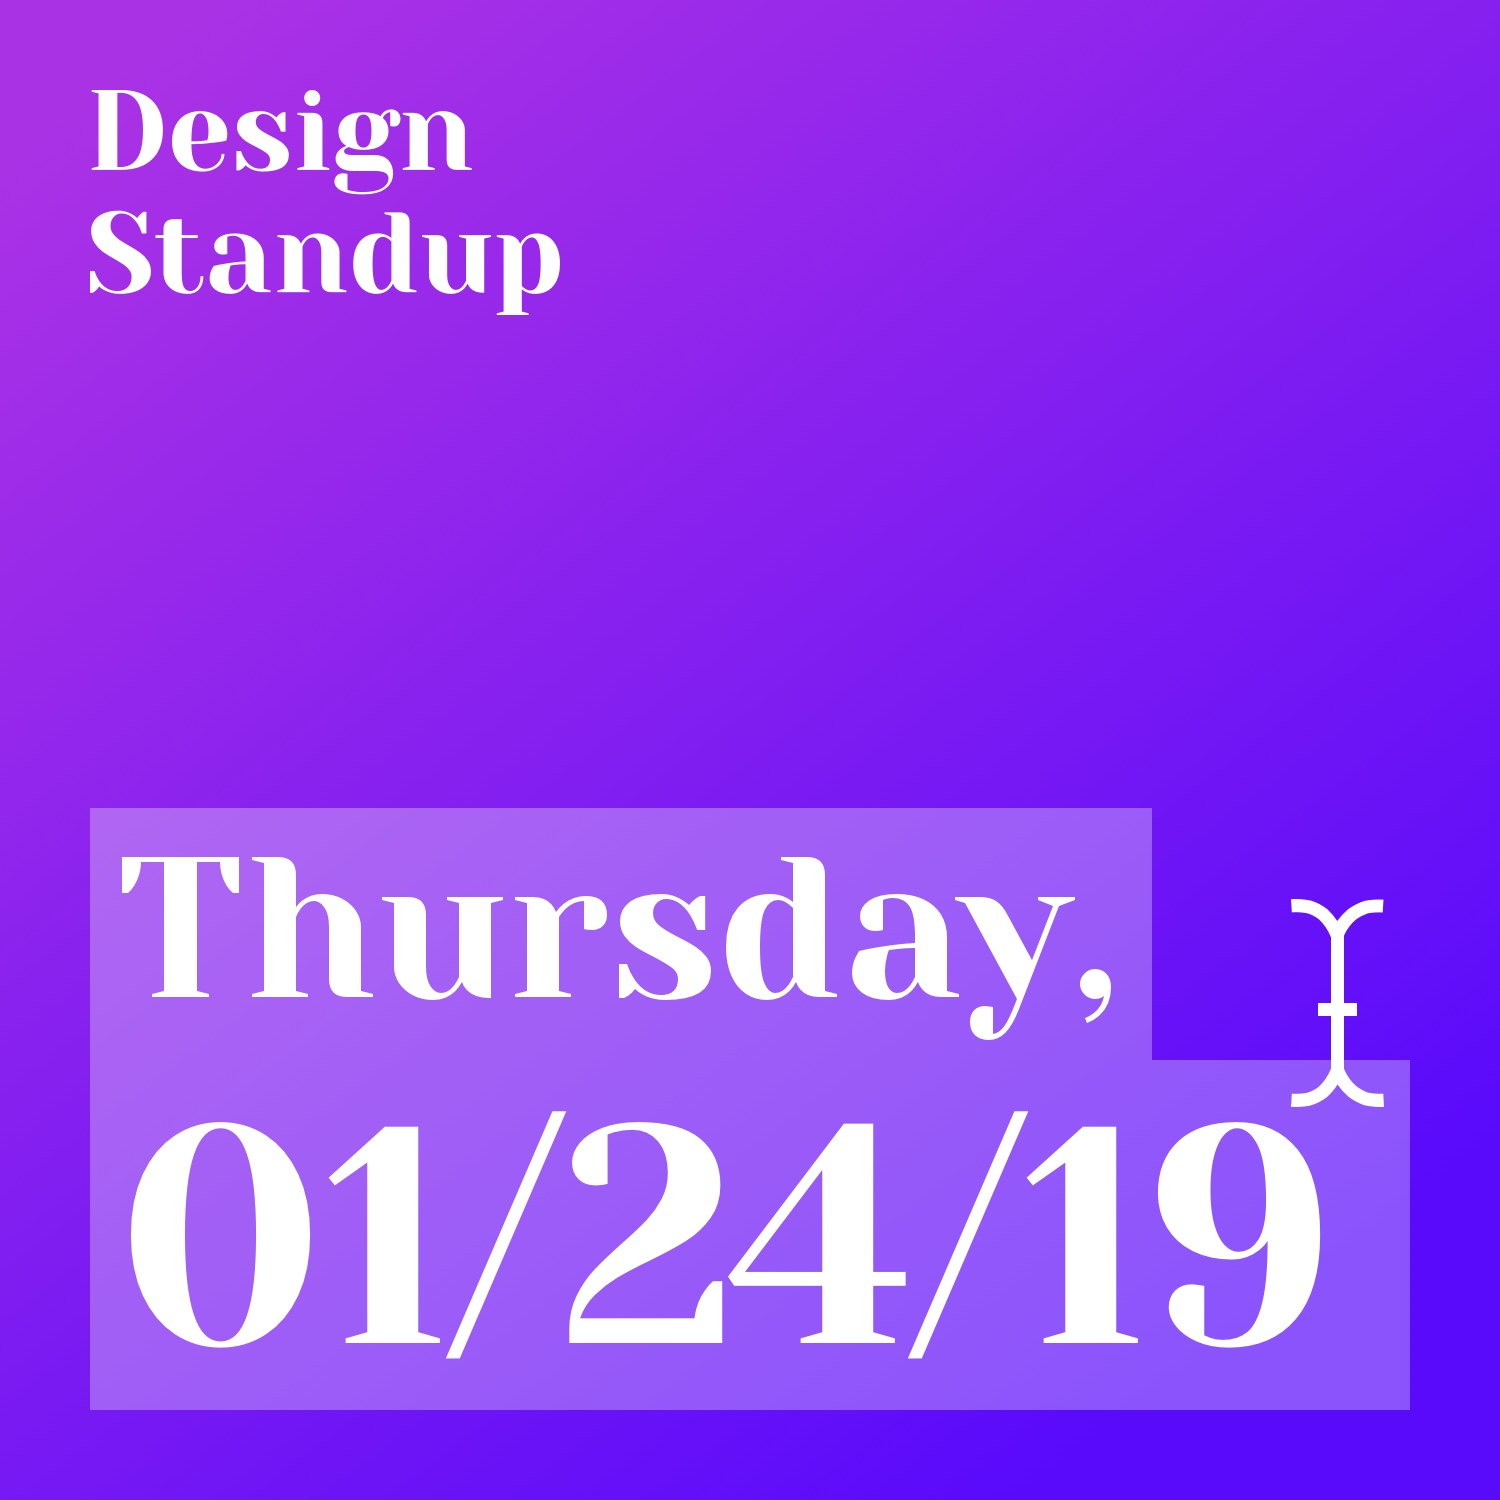 #008: [Part 2] The State of UX in 2019 by Fabricio Teixeira and Caio Braga of UX Collective